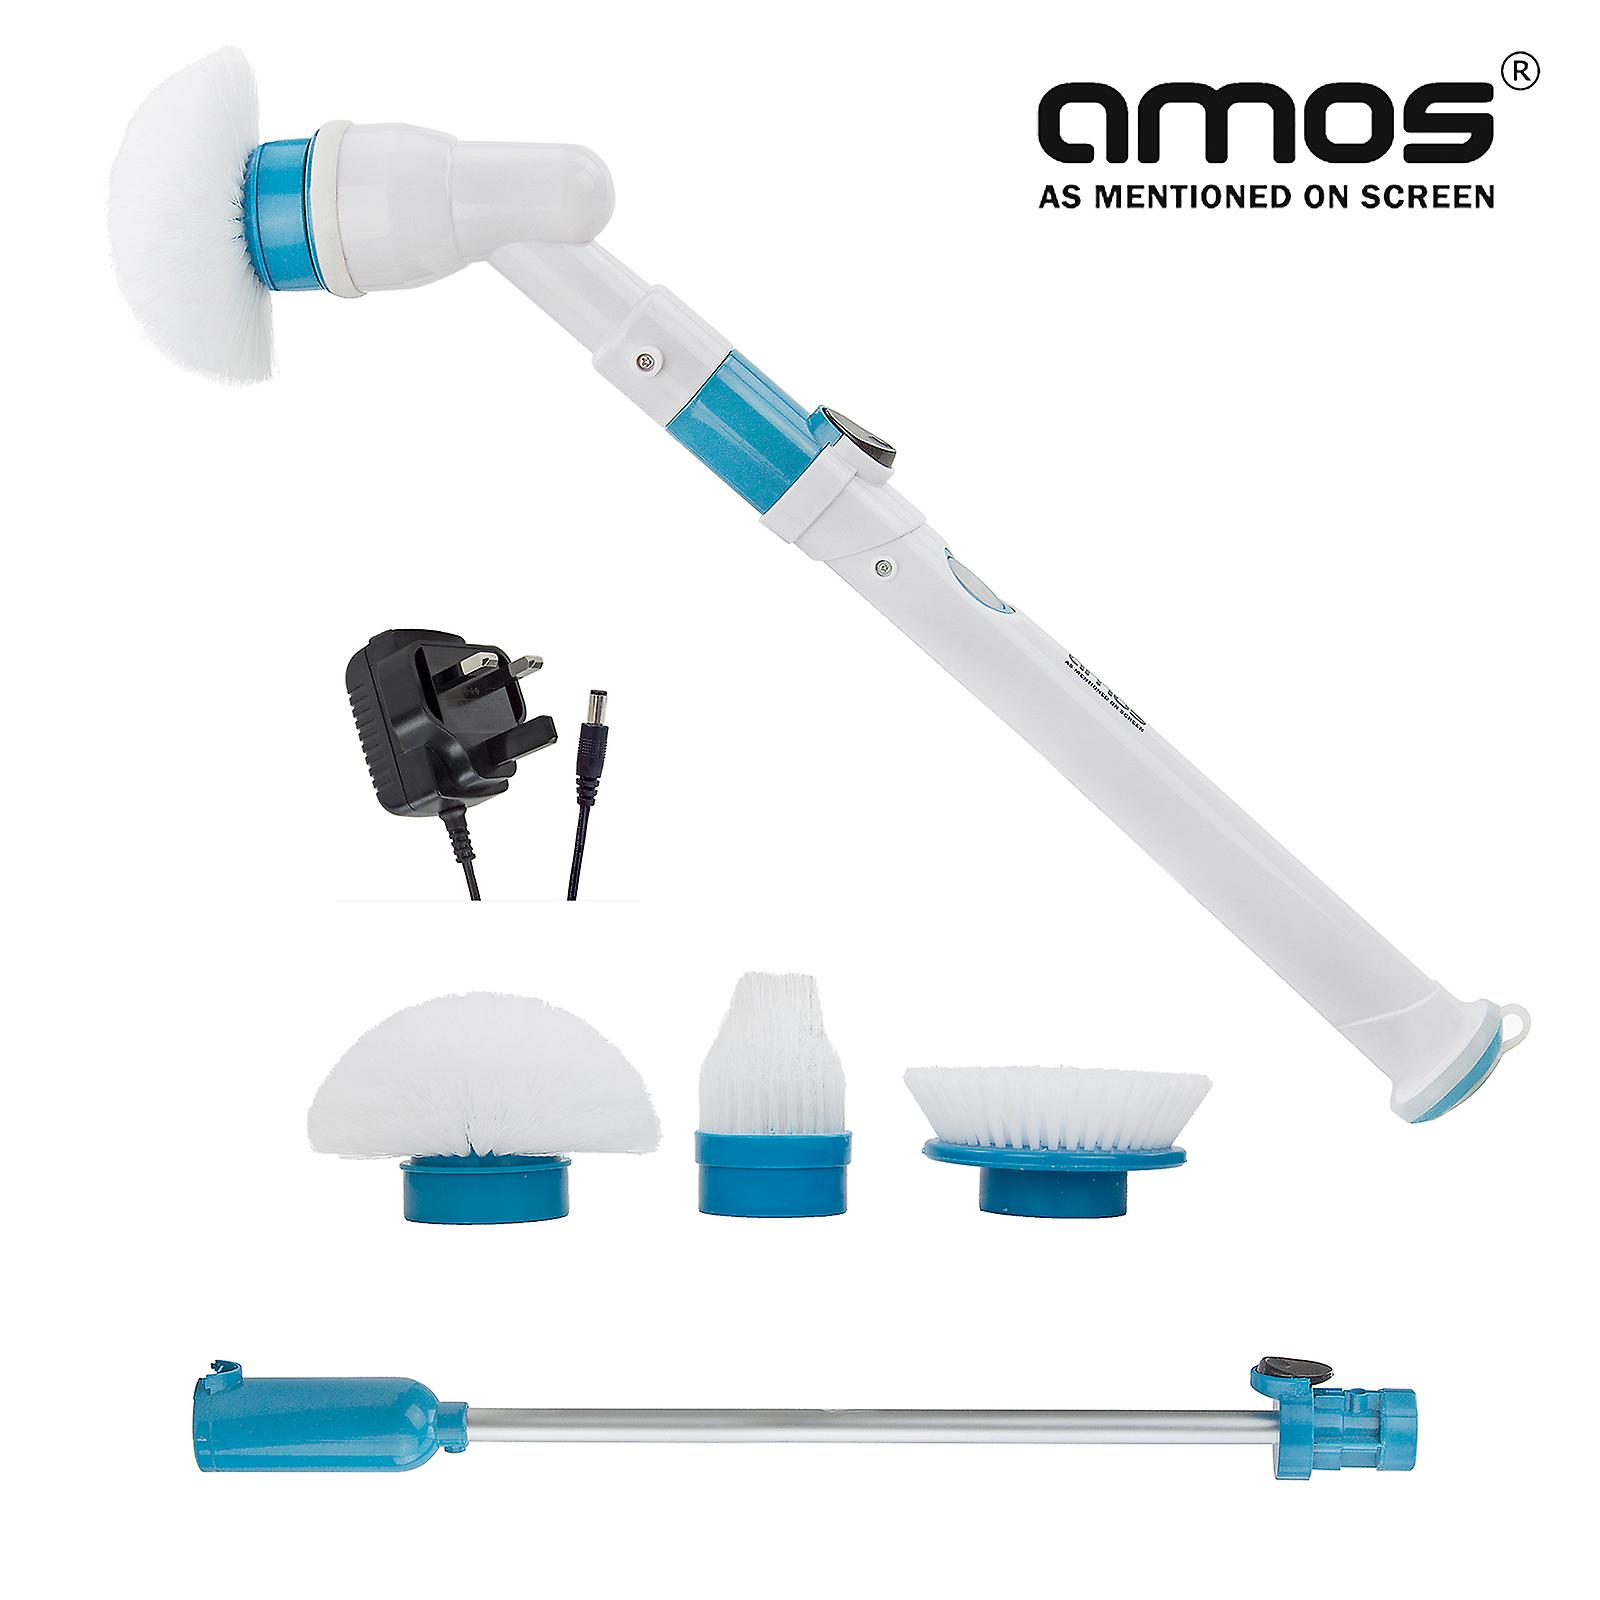 AMOS Scrubber Super Spin Brush